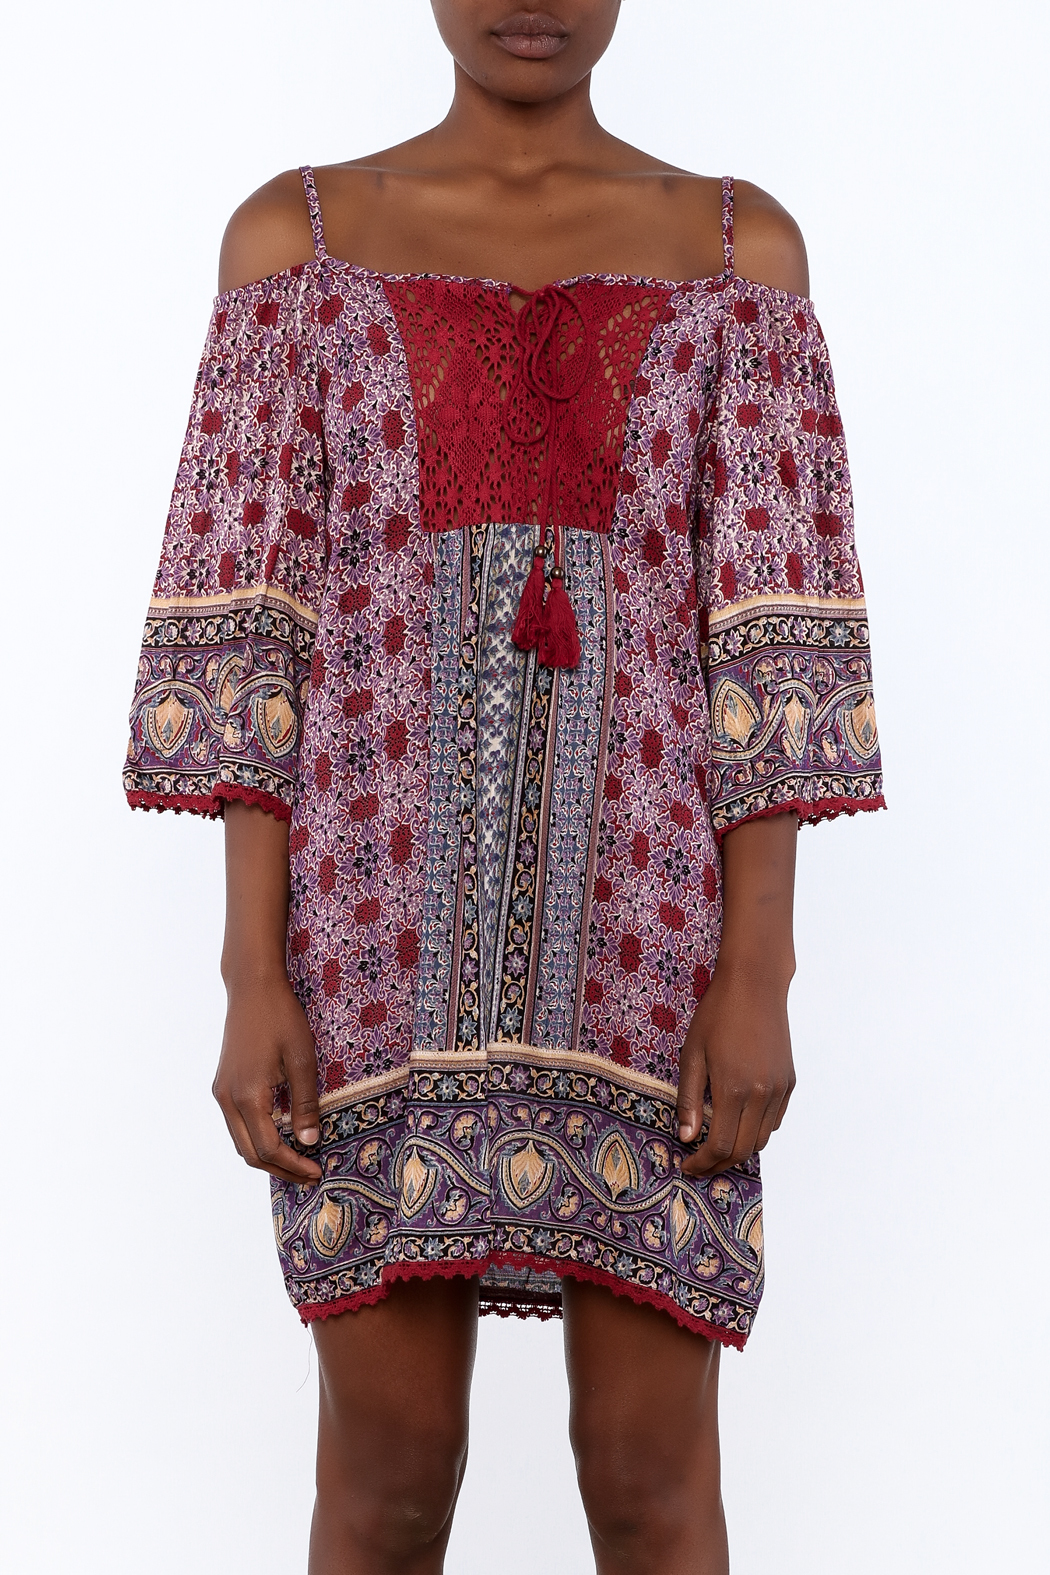 Gina Louise Gypsy Free Dress - Side Cropped Image